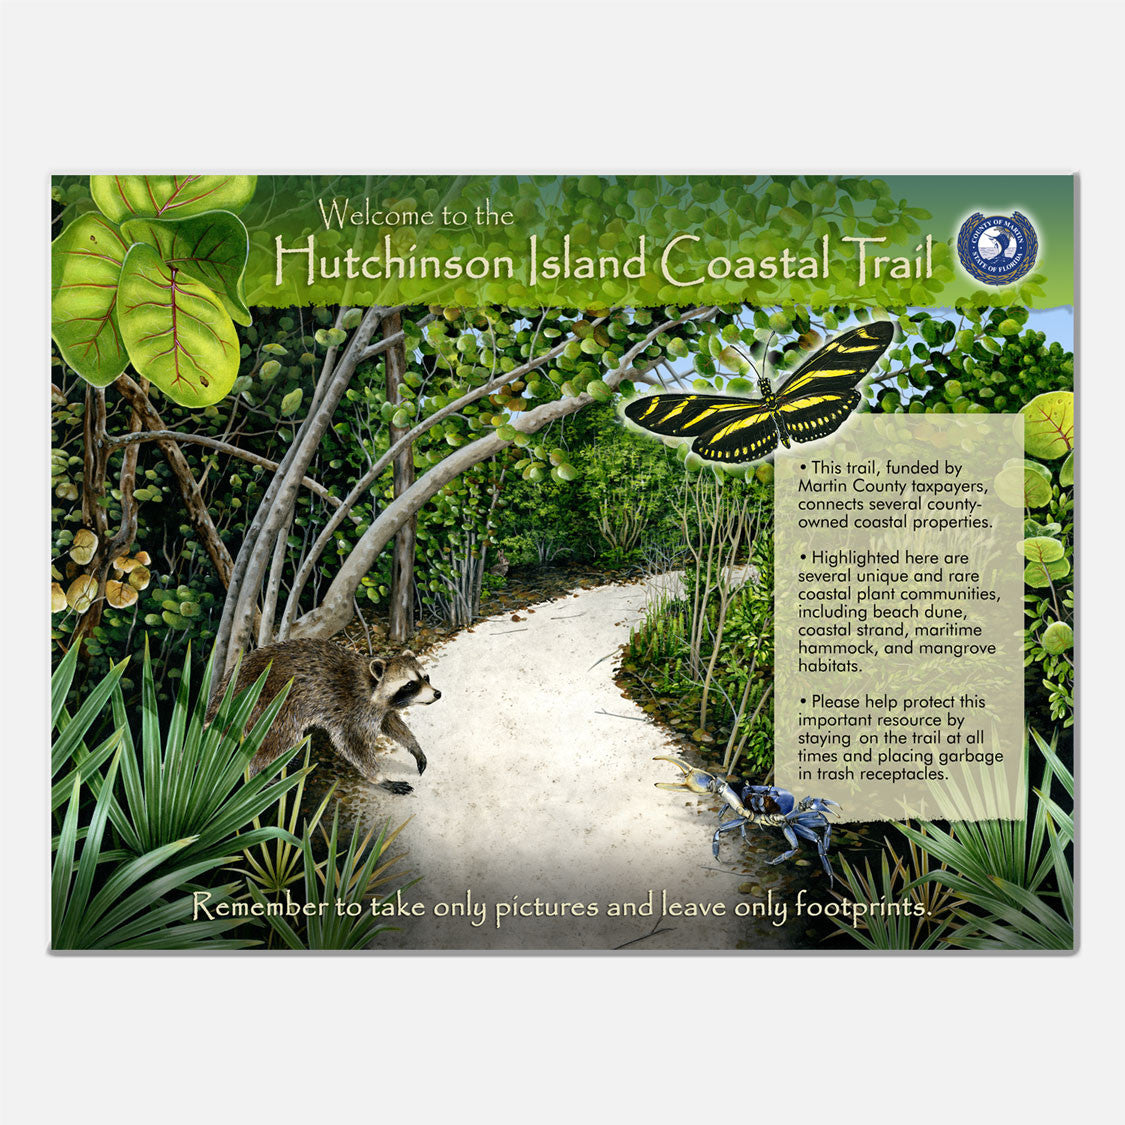 This beautifully illustrated environmental sign introduces the Hutchinson Island Coastal Trail in southeast Florida.